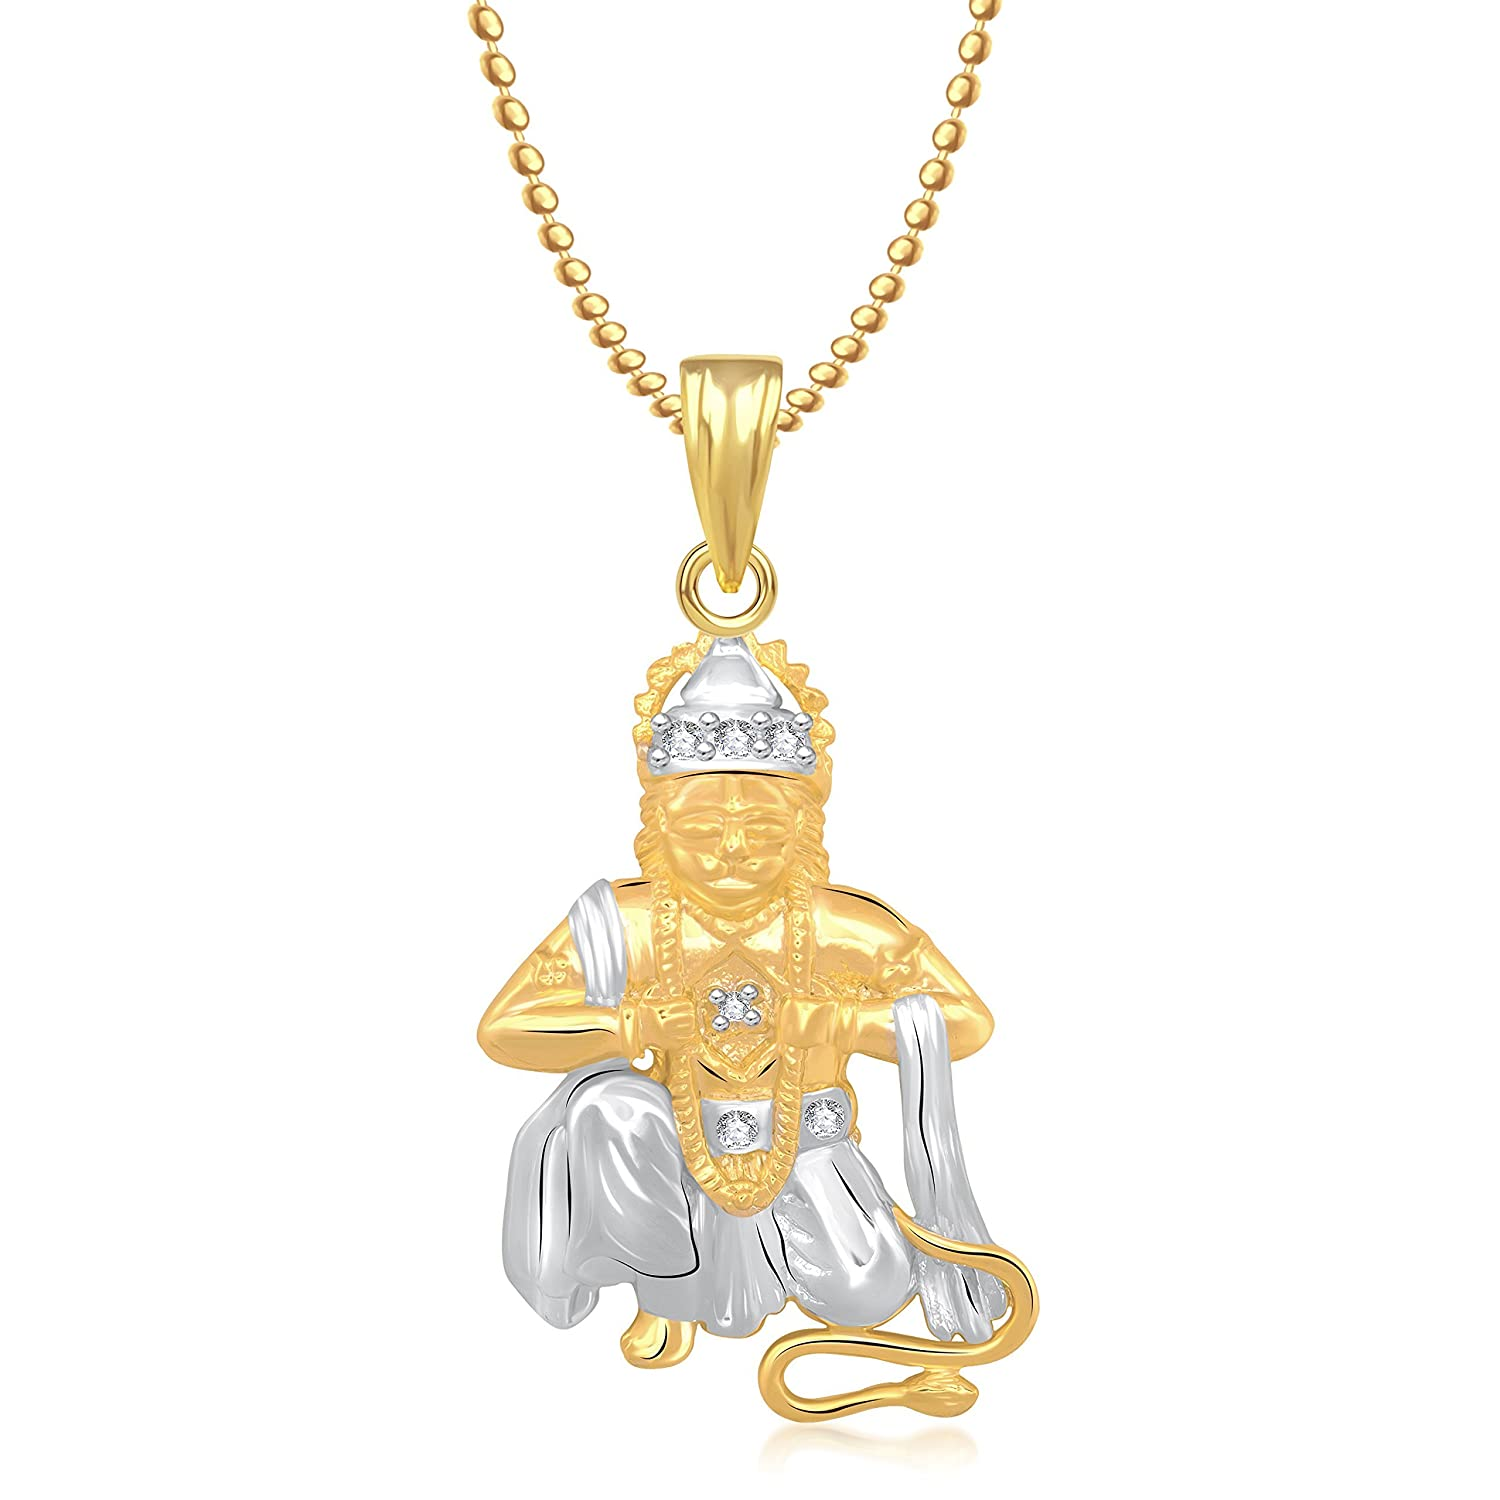 inch of sterling bling god hamsa hamesh hand charm filigree ssp jewelry n necklace bj silver pendant fatima